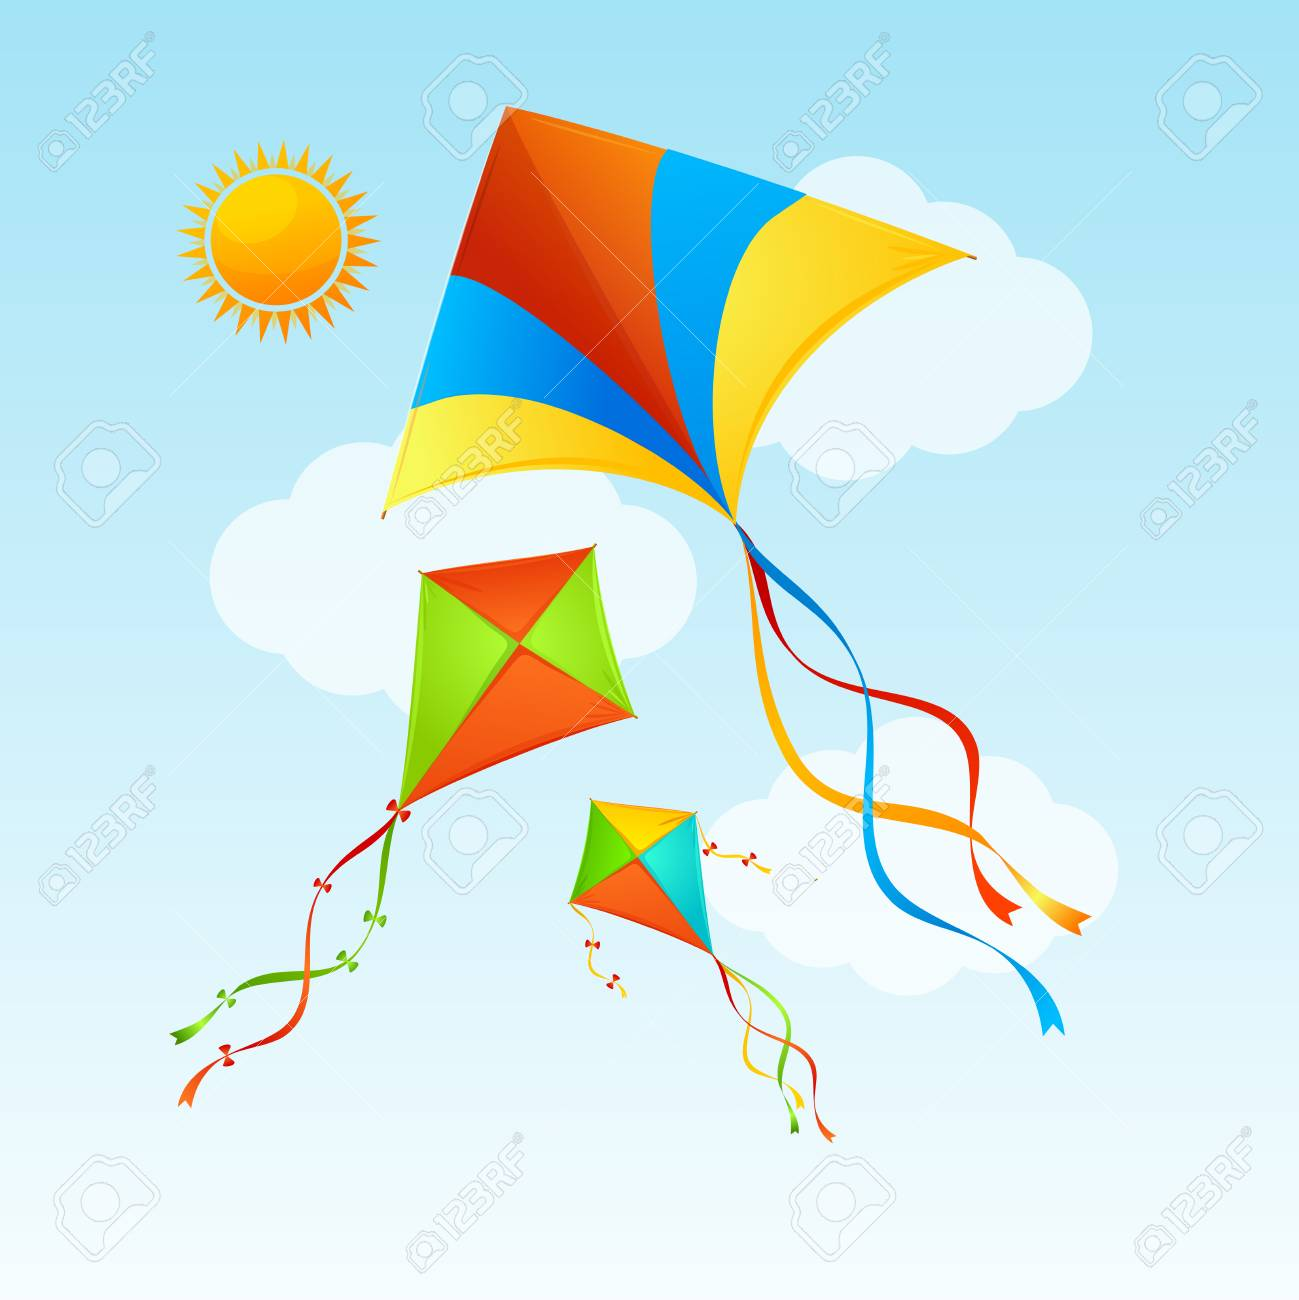 Flying Kite And Clouds On A Blue Sky Summer Concept Background Holiday Or Vacation Time